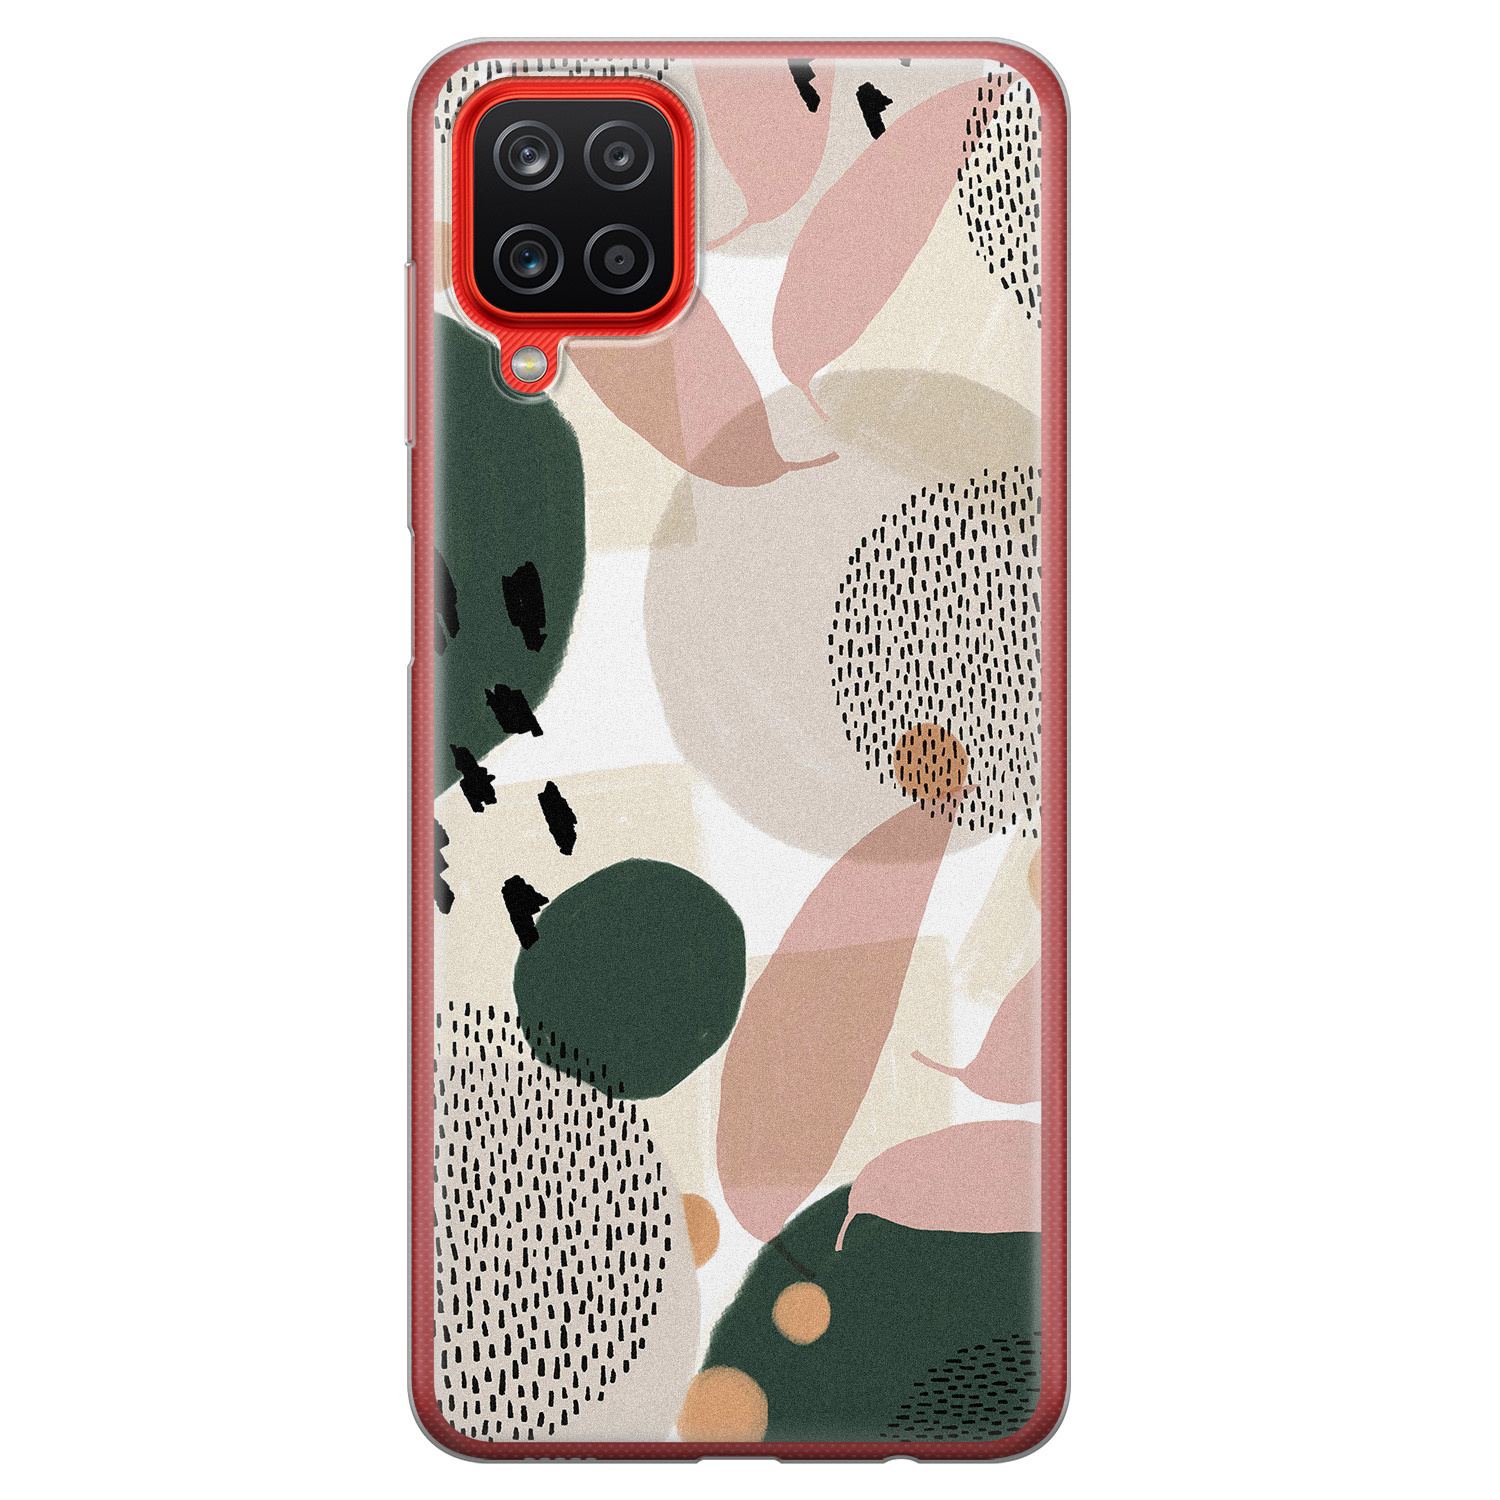 Samsung Galaxy A12 siliconen hoesje - Abstract print